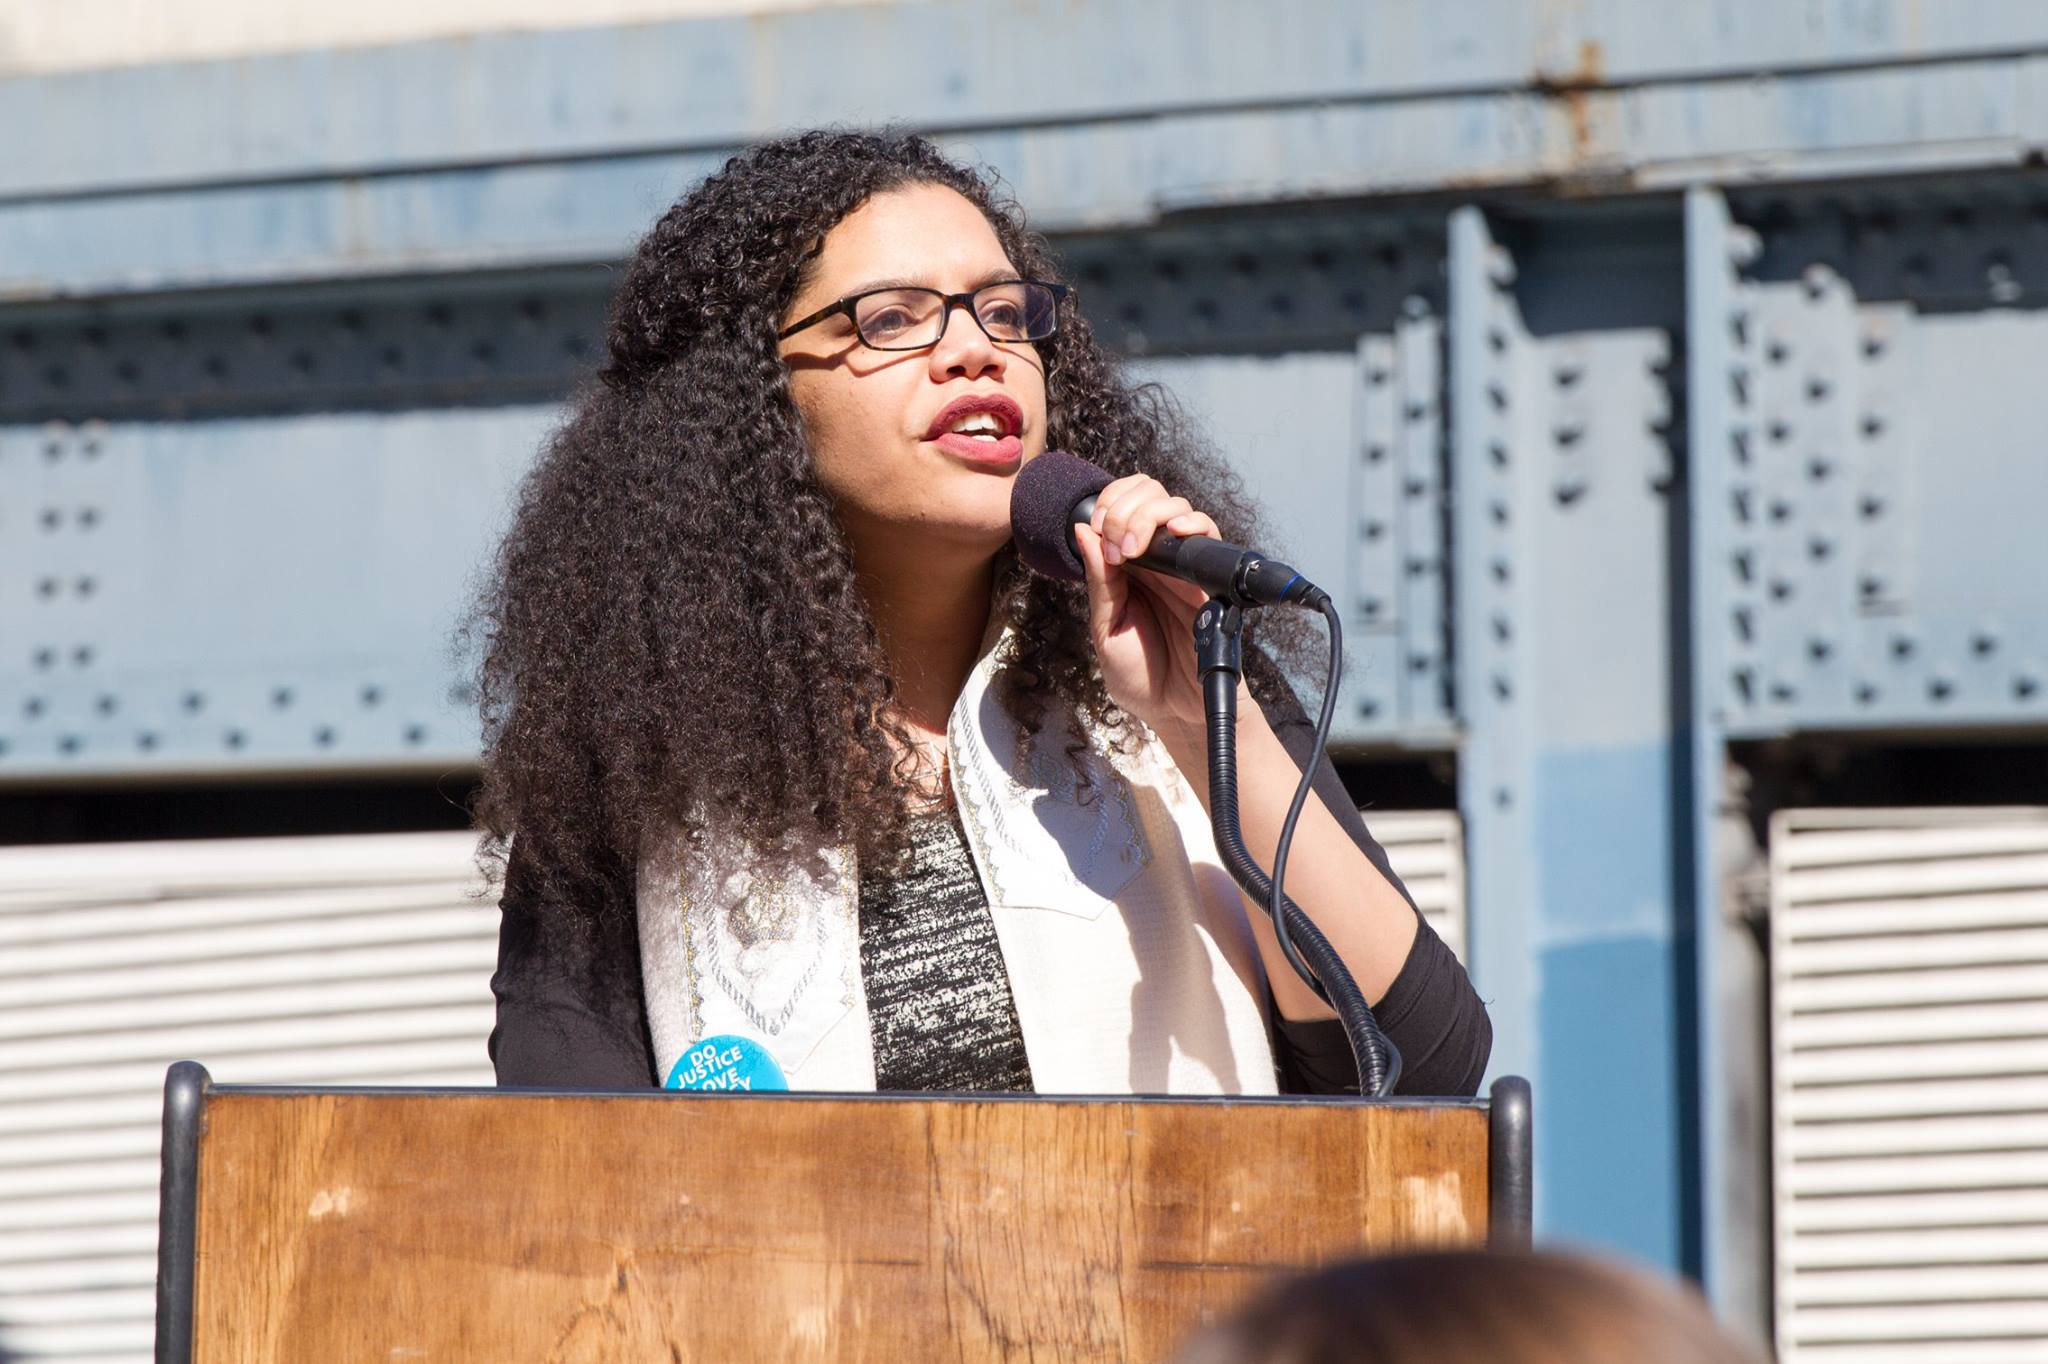 Speaking at the March for Racial Justice - Credit: Mirah Curzer